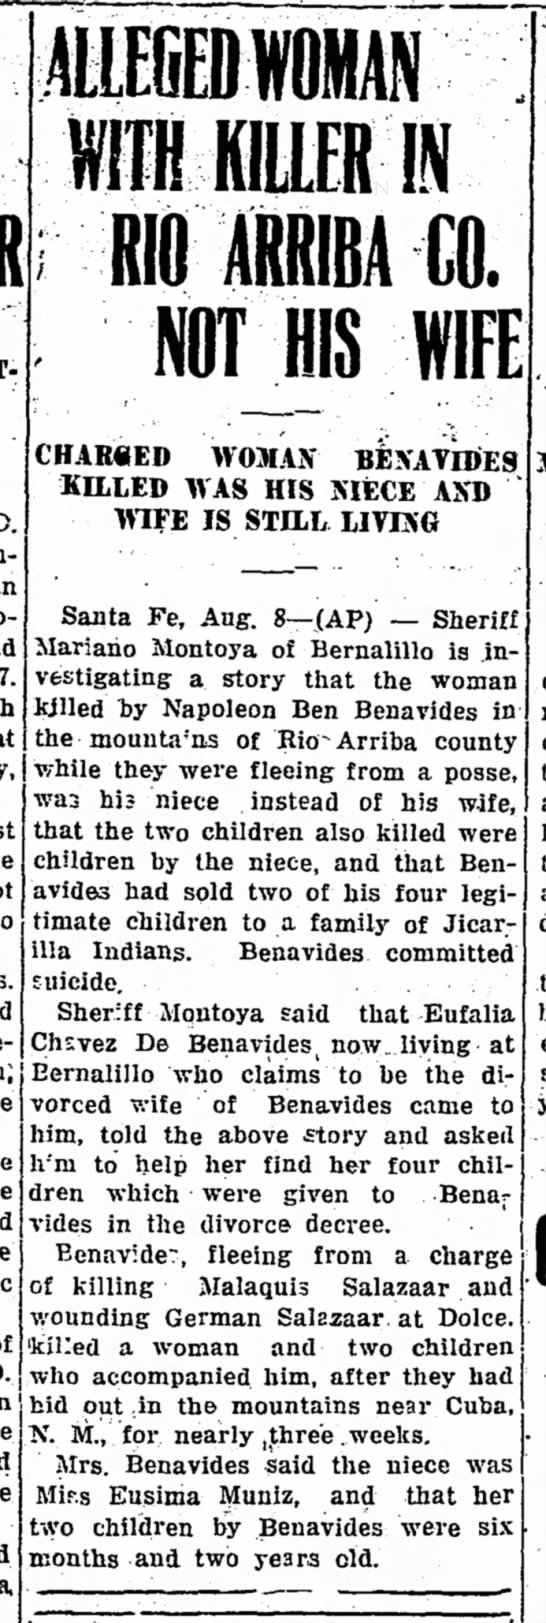 Benavides case - AlLEGEDfOMAN ilffllLERIN 1RIBA CO. NOT HIS WIFE...